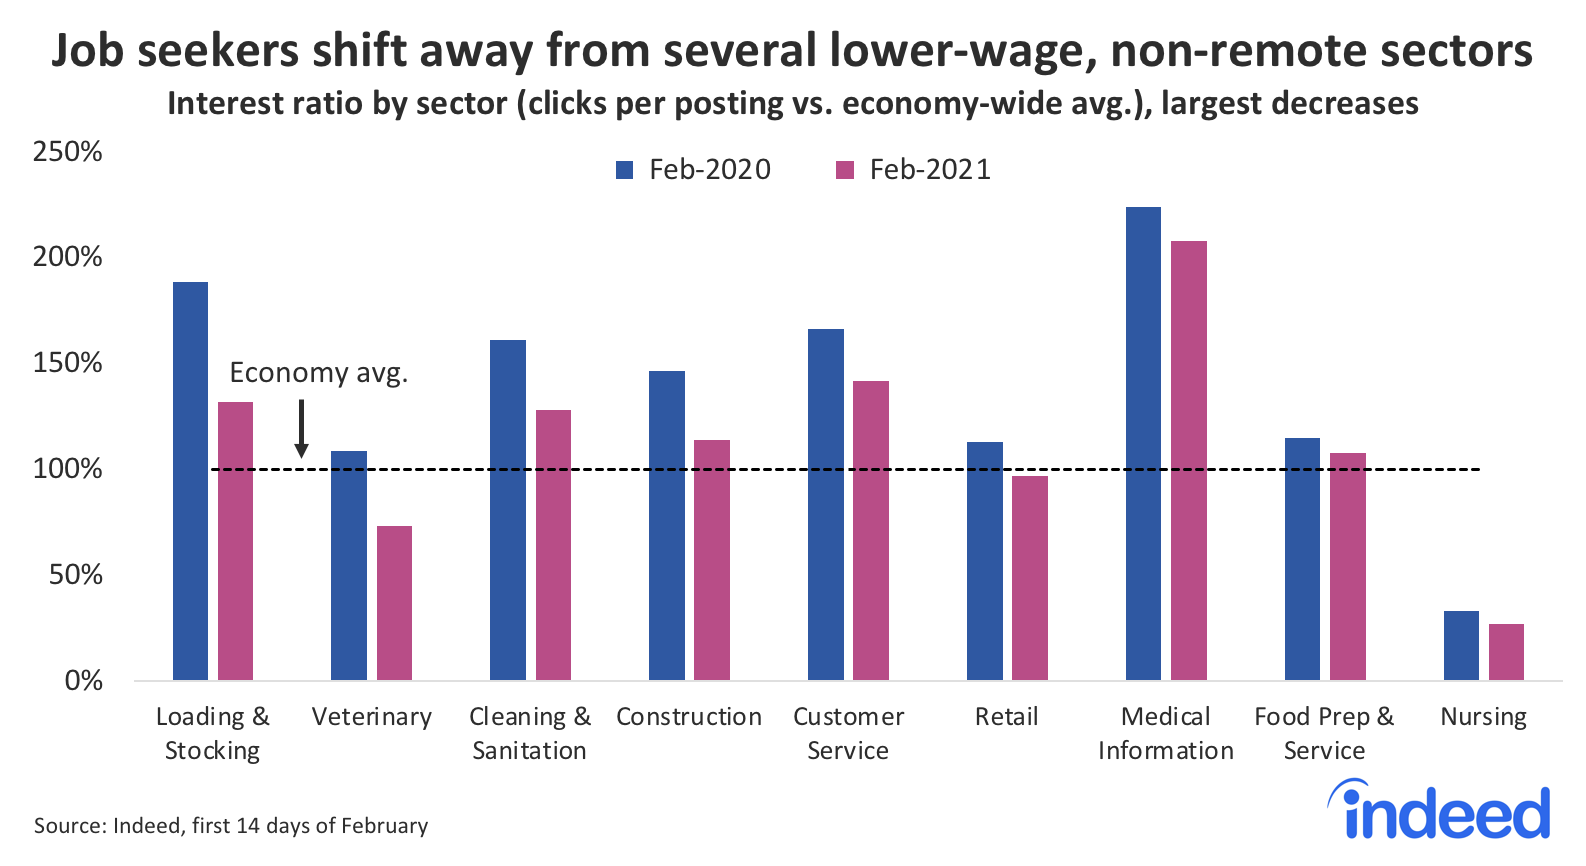 bar graph showing job seekers shift away from several lower-wage, non-remote sectors